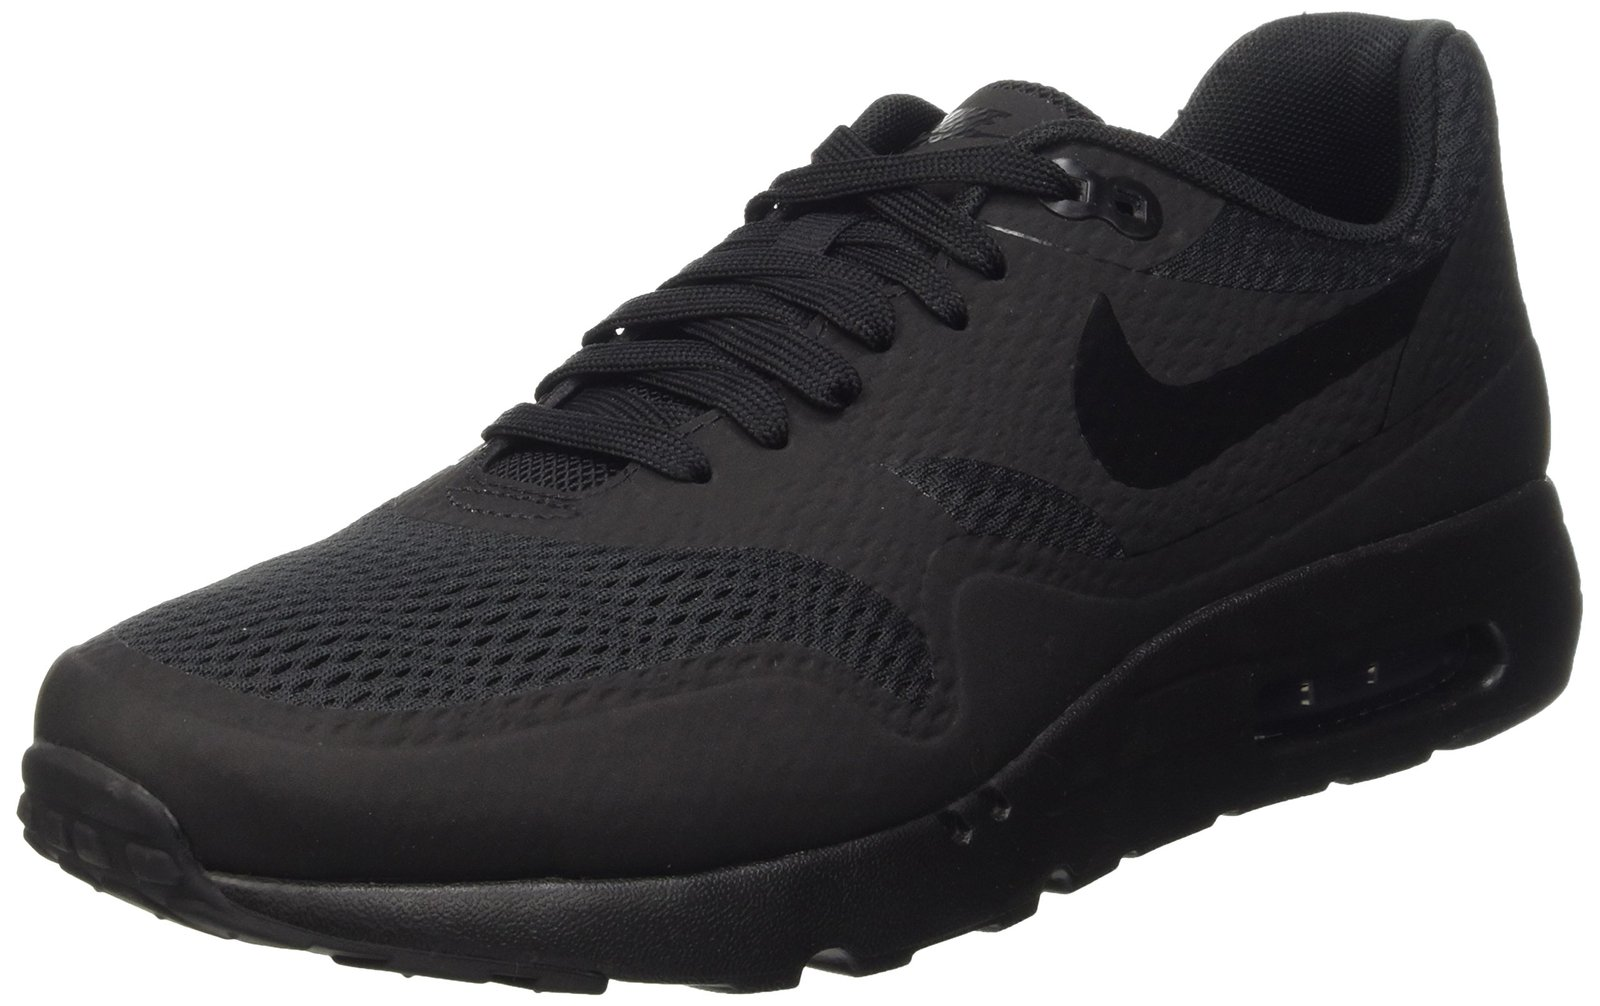 san francisco eee83 2110b Nike Men s Air Max 1 Ultra Essential Black Black Black Running Shoe 10.5  Men US